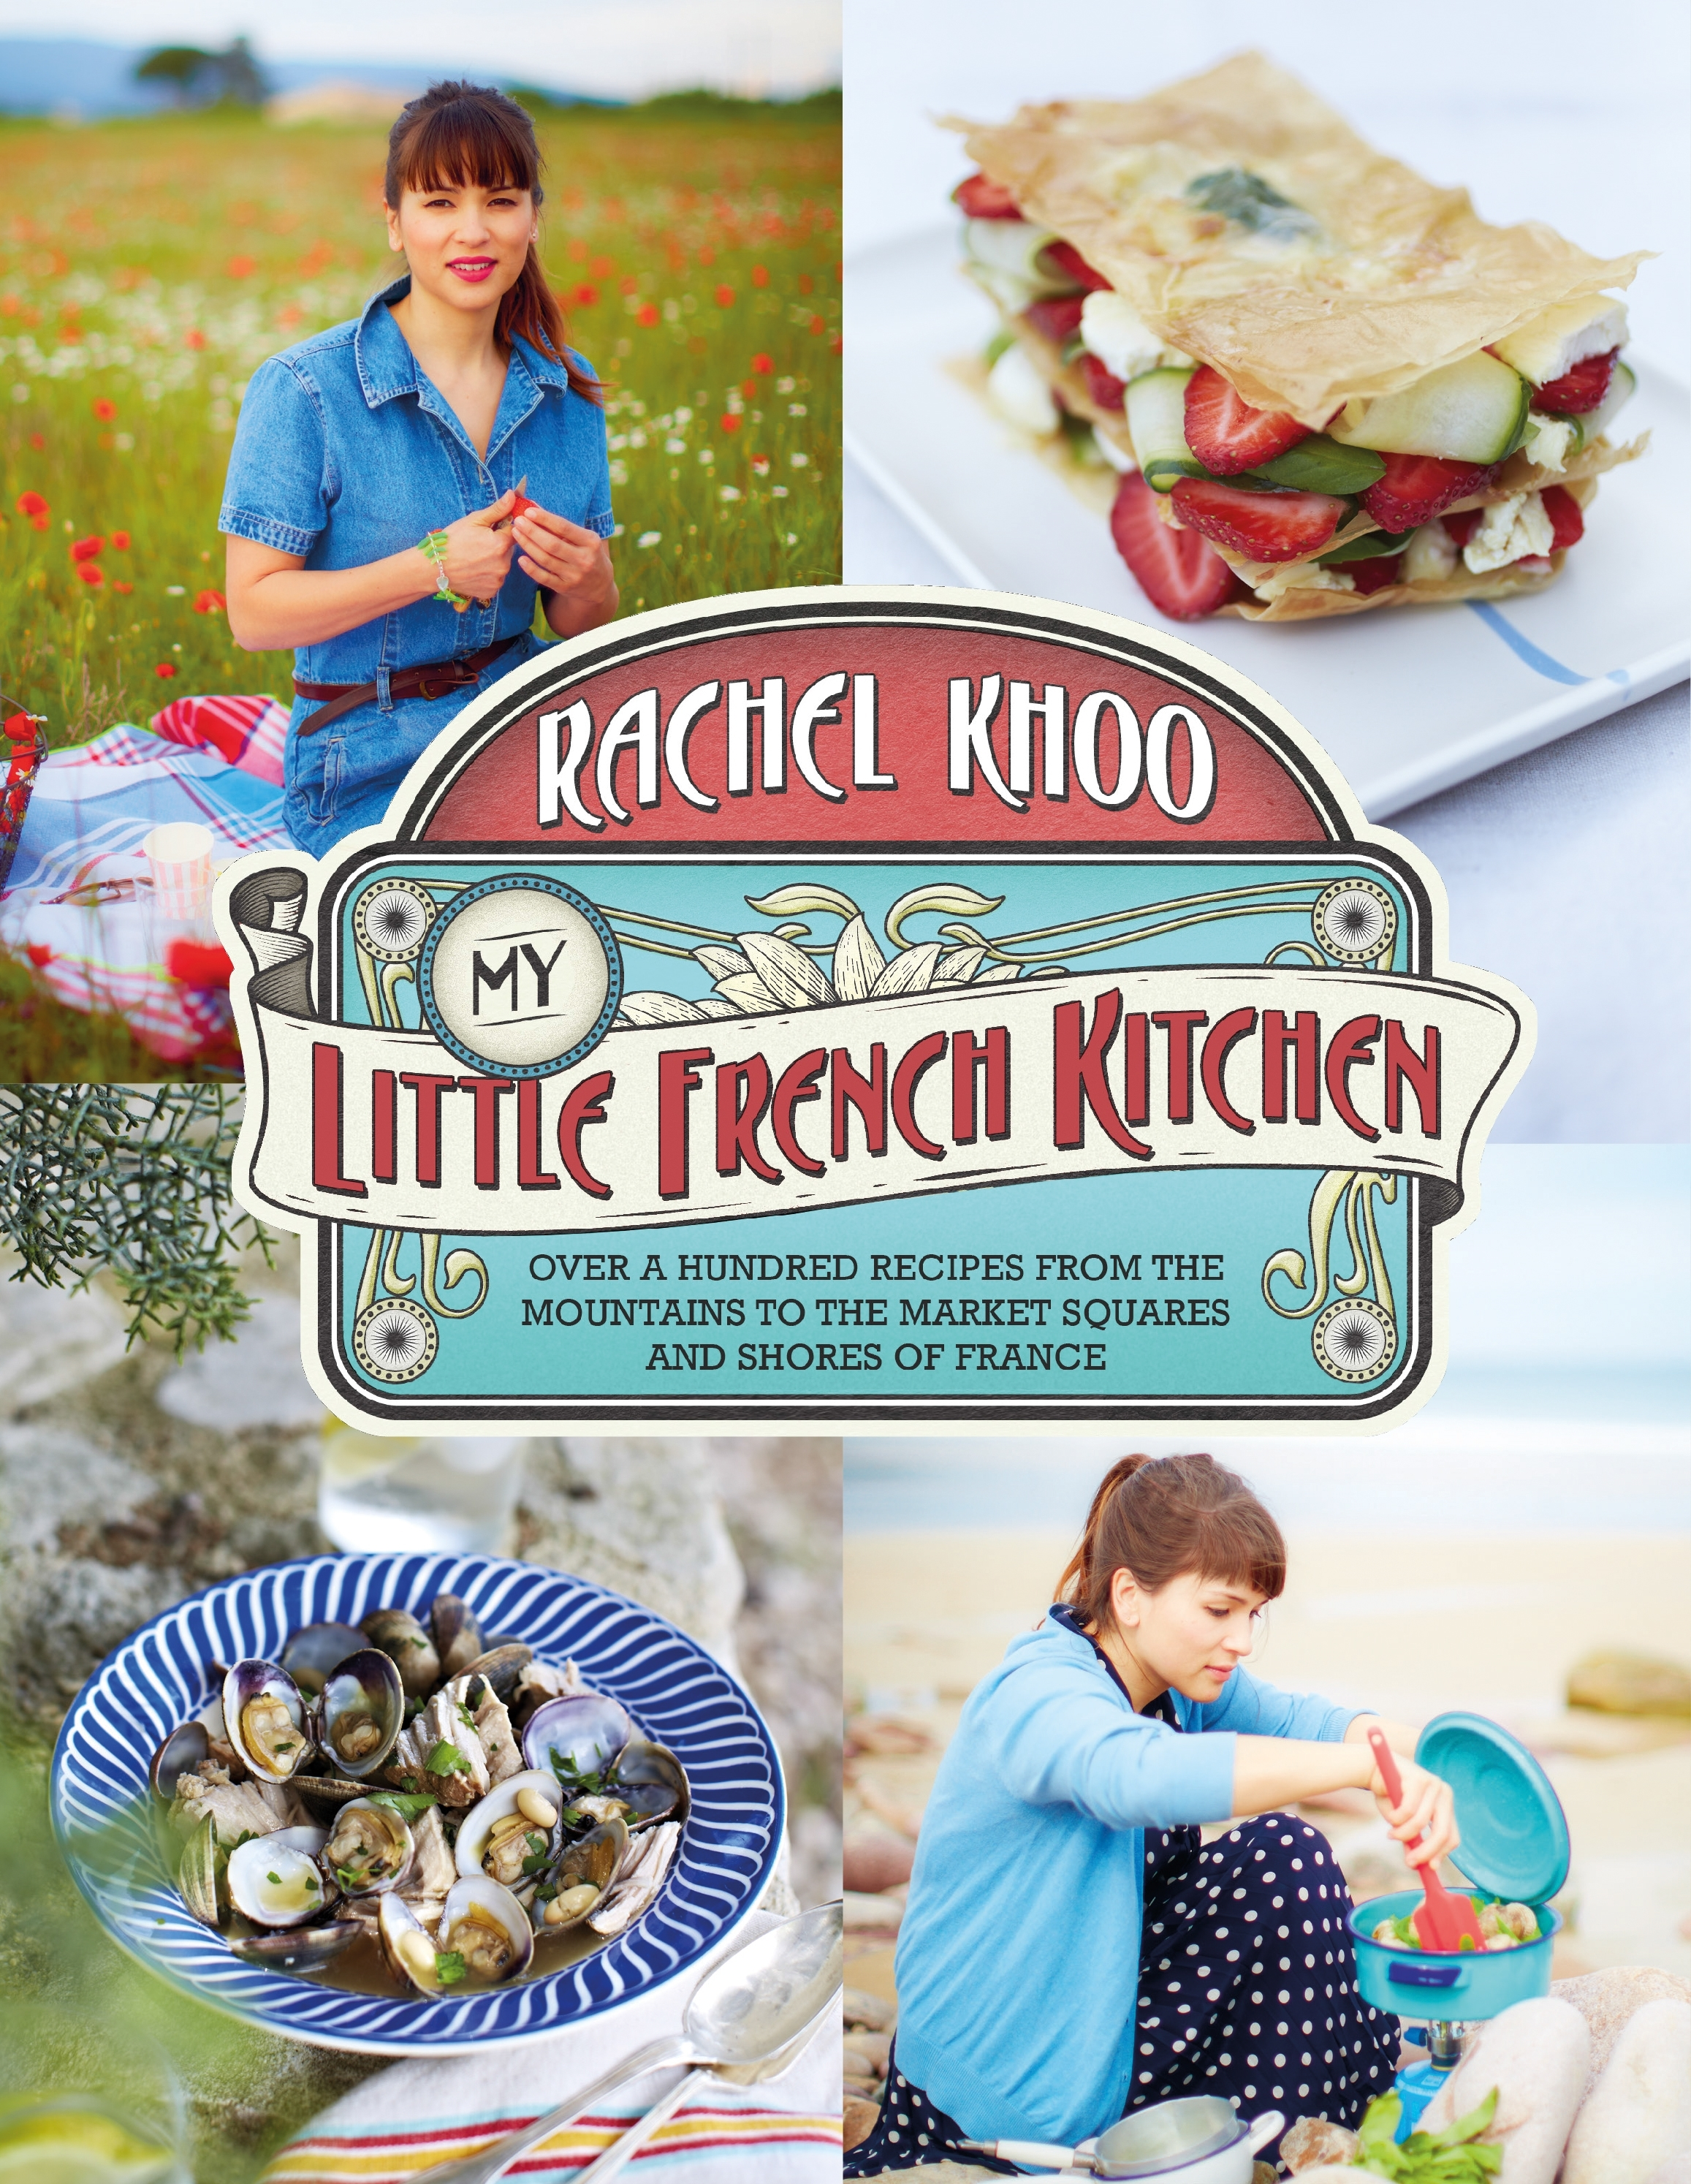 My Little French Kitchen by Rachel Khoo - Penguin Books New Zealand